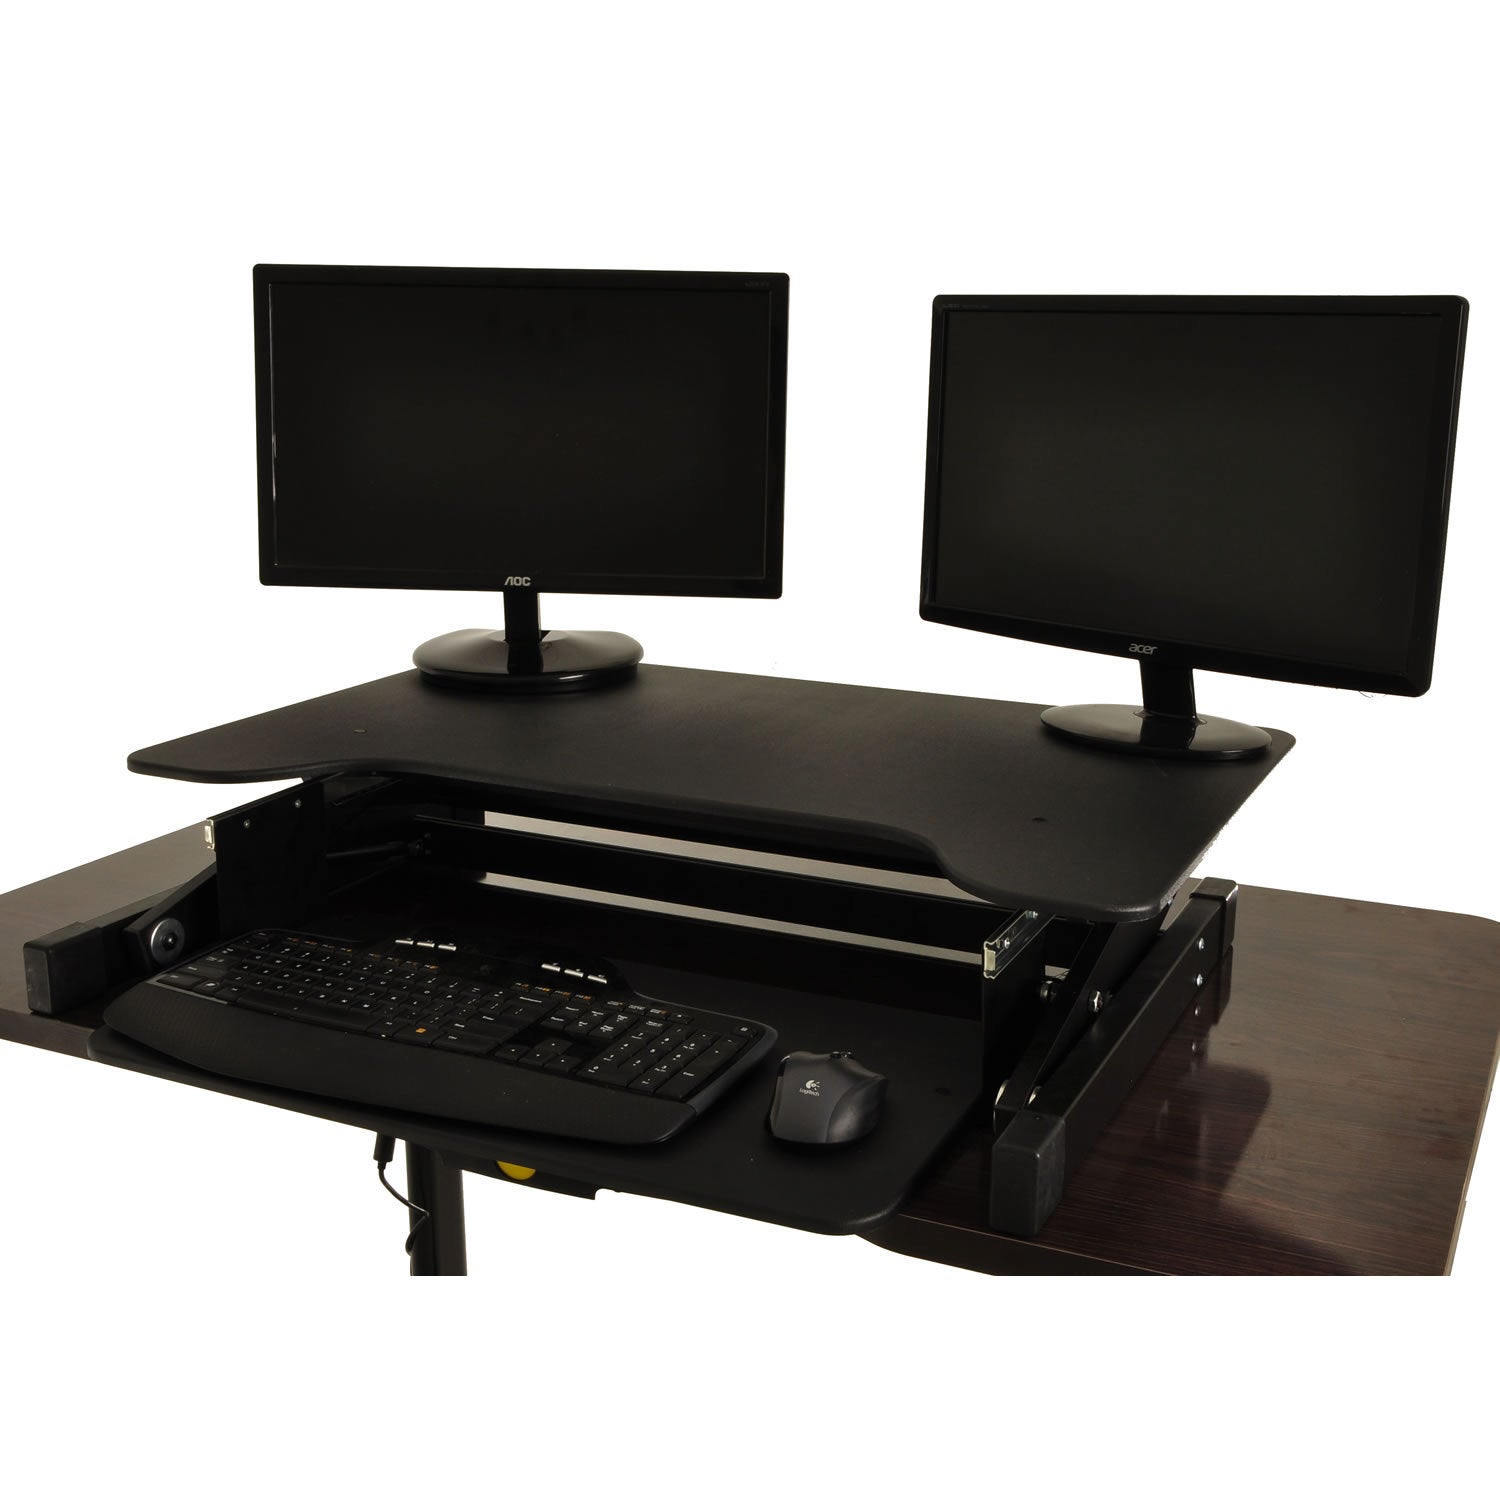 Desktop Tabletop Standing Desk Adjustable-height Sit-to-stand Ergonomic  Workstation - Free Shipping Today - Overstock.com - 20804047